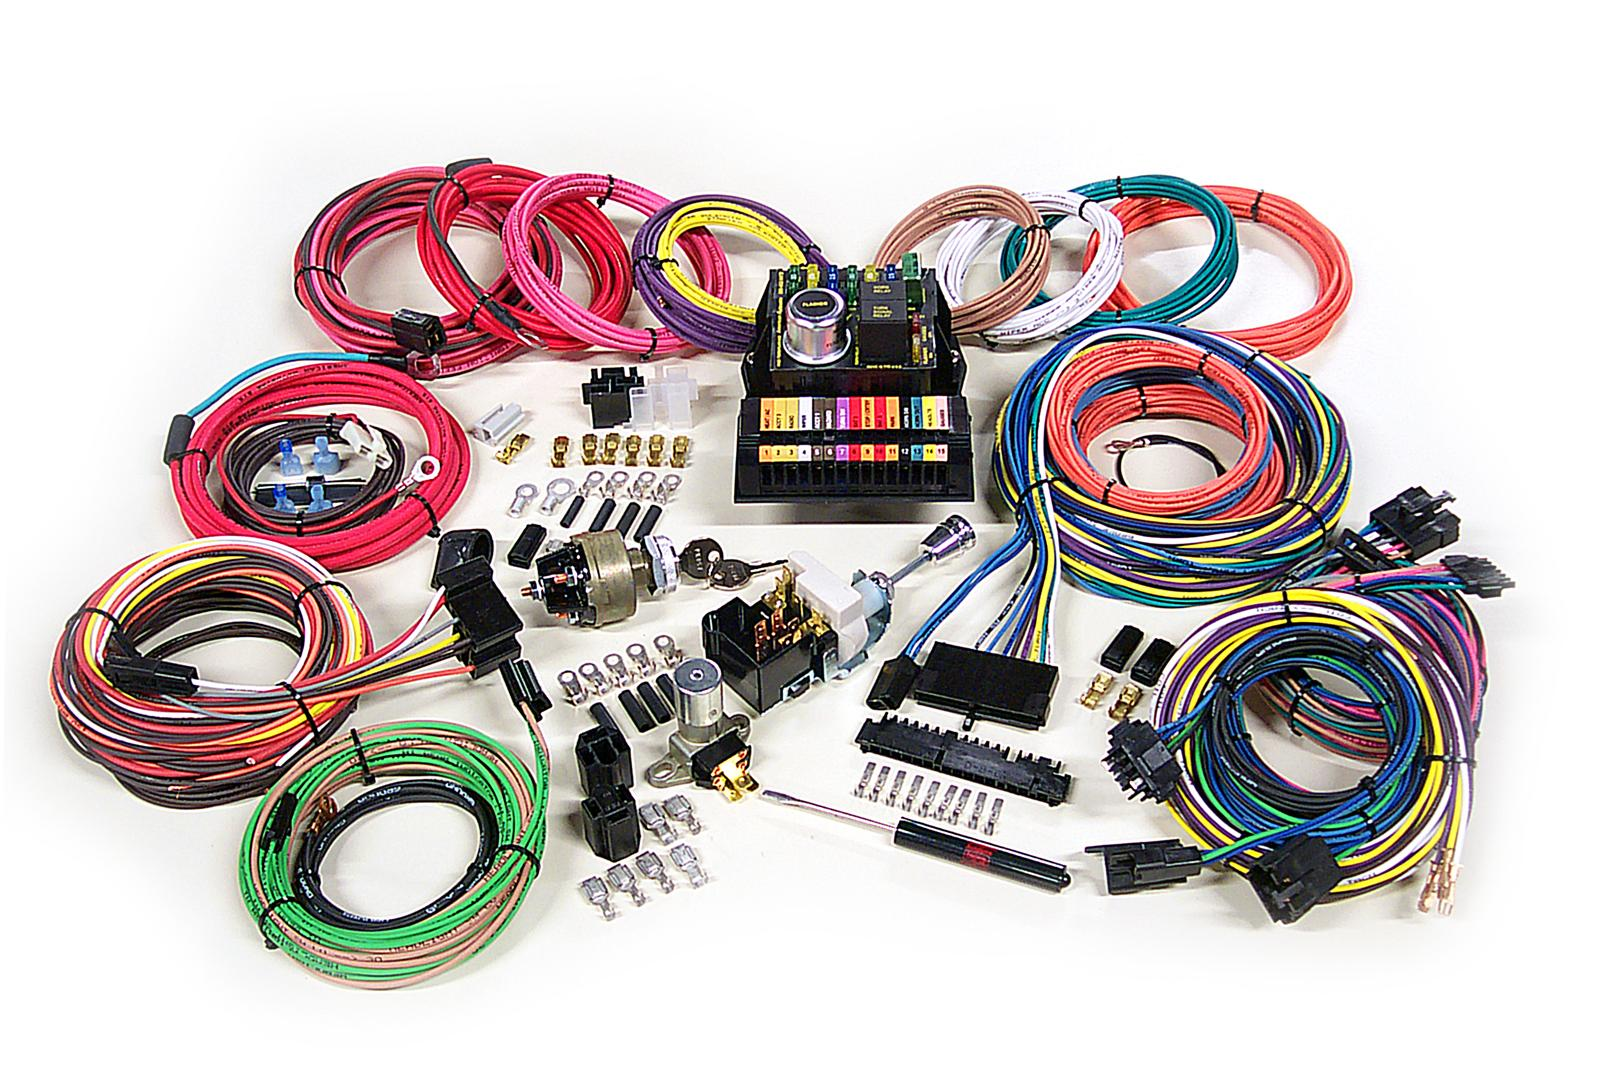 hight resolution of custom automotive wiring harness kits wiring diagram compilation custom automotive wiring harness kits